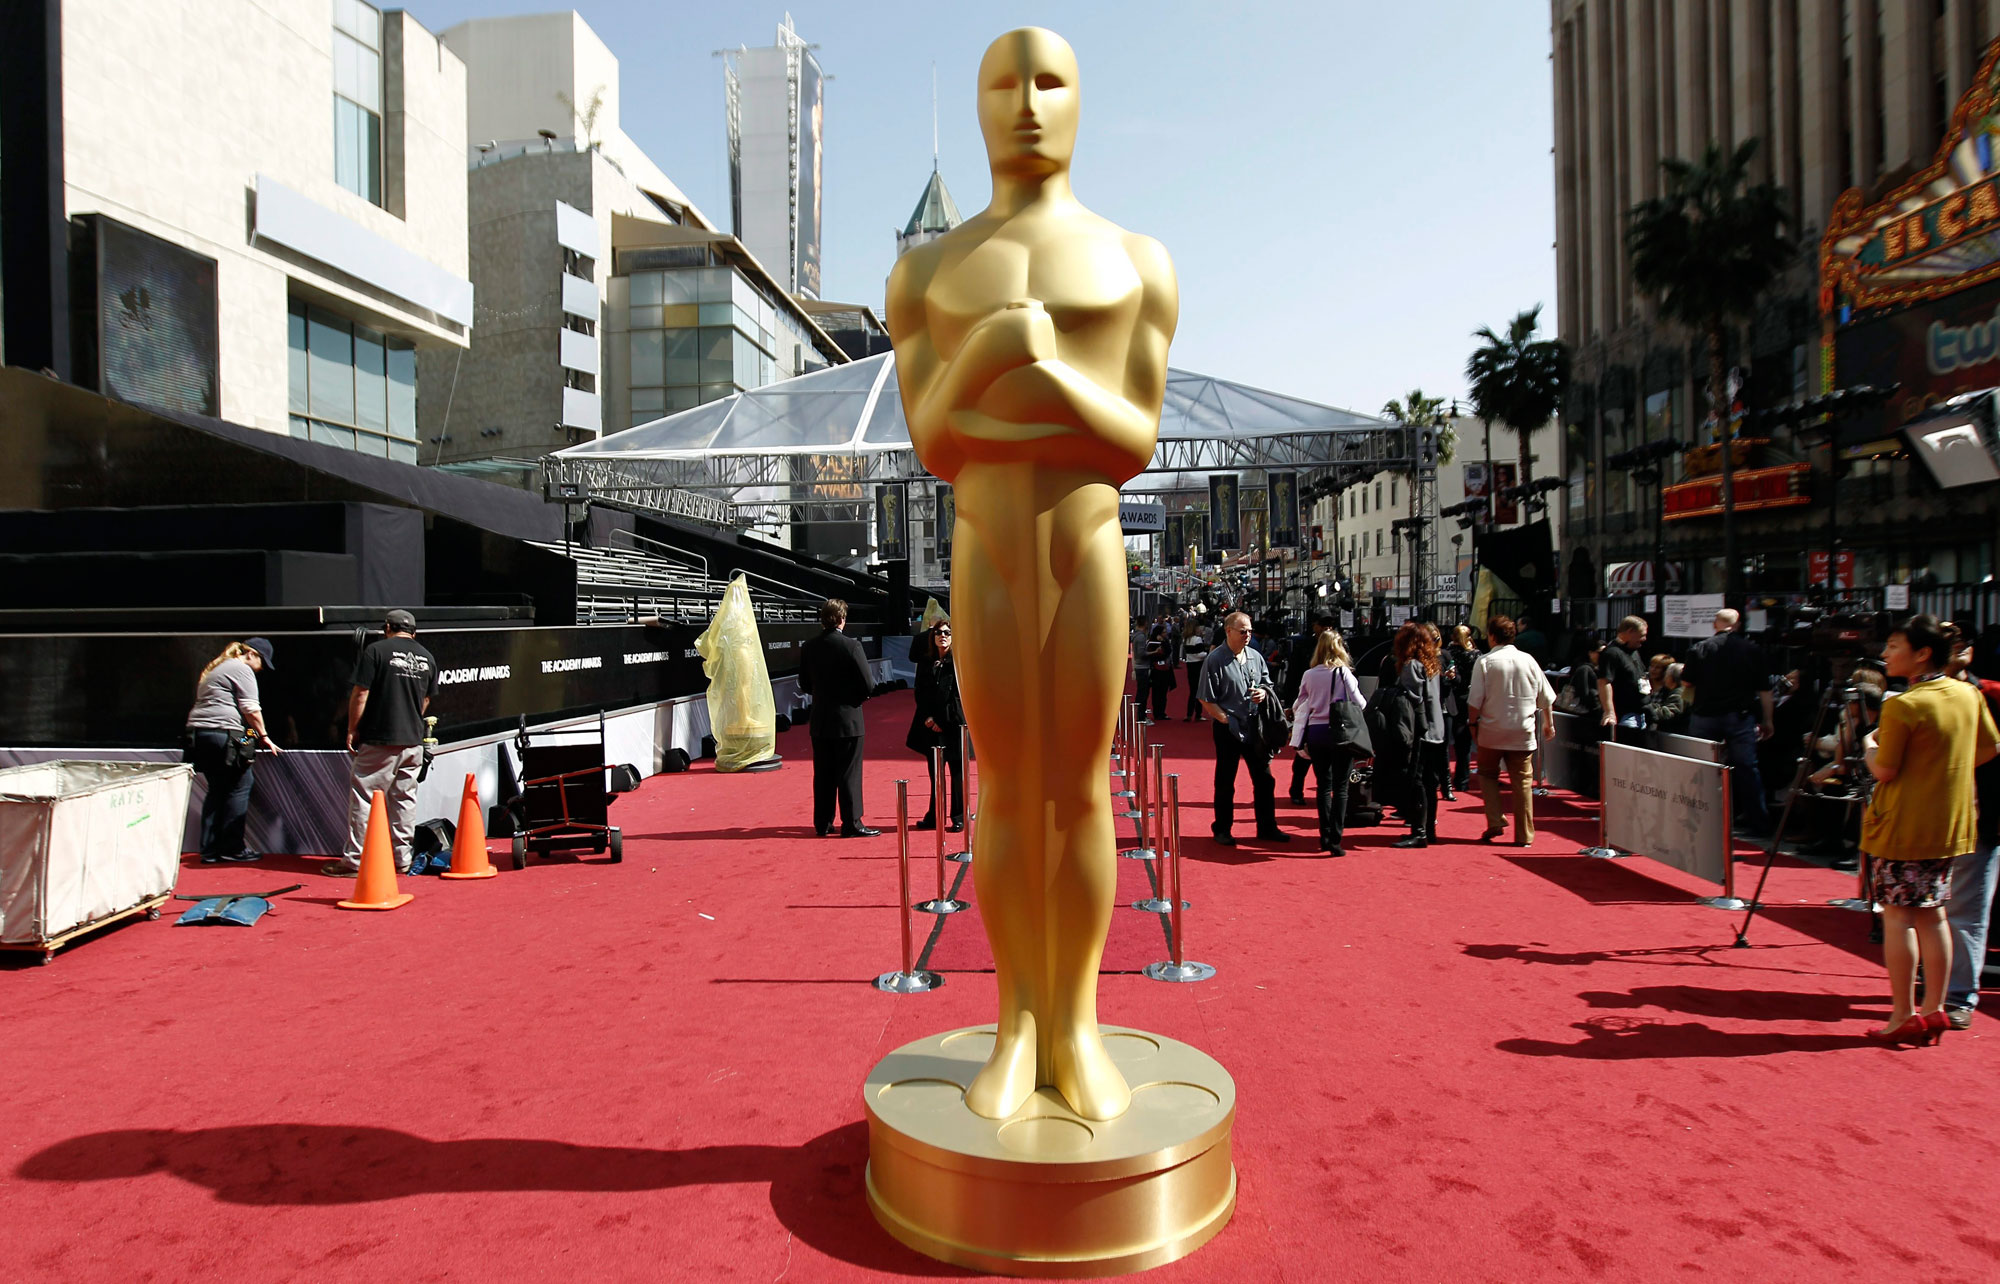 A Oscar statue is seen on the red carpet before the 84th Academy Awards in Los Angeles on Feb. 25, 2012. THE ASSOCIATED PRESS/Matt Sayles.